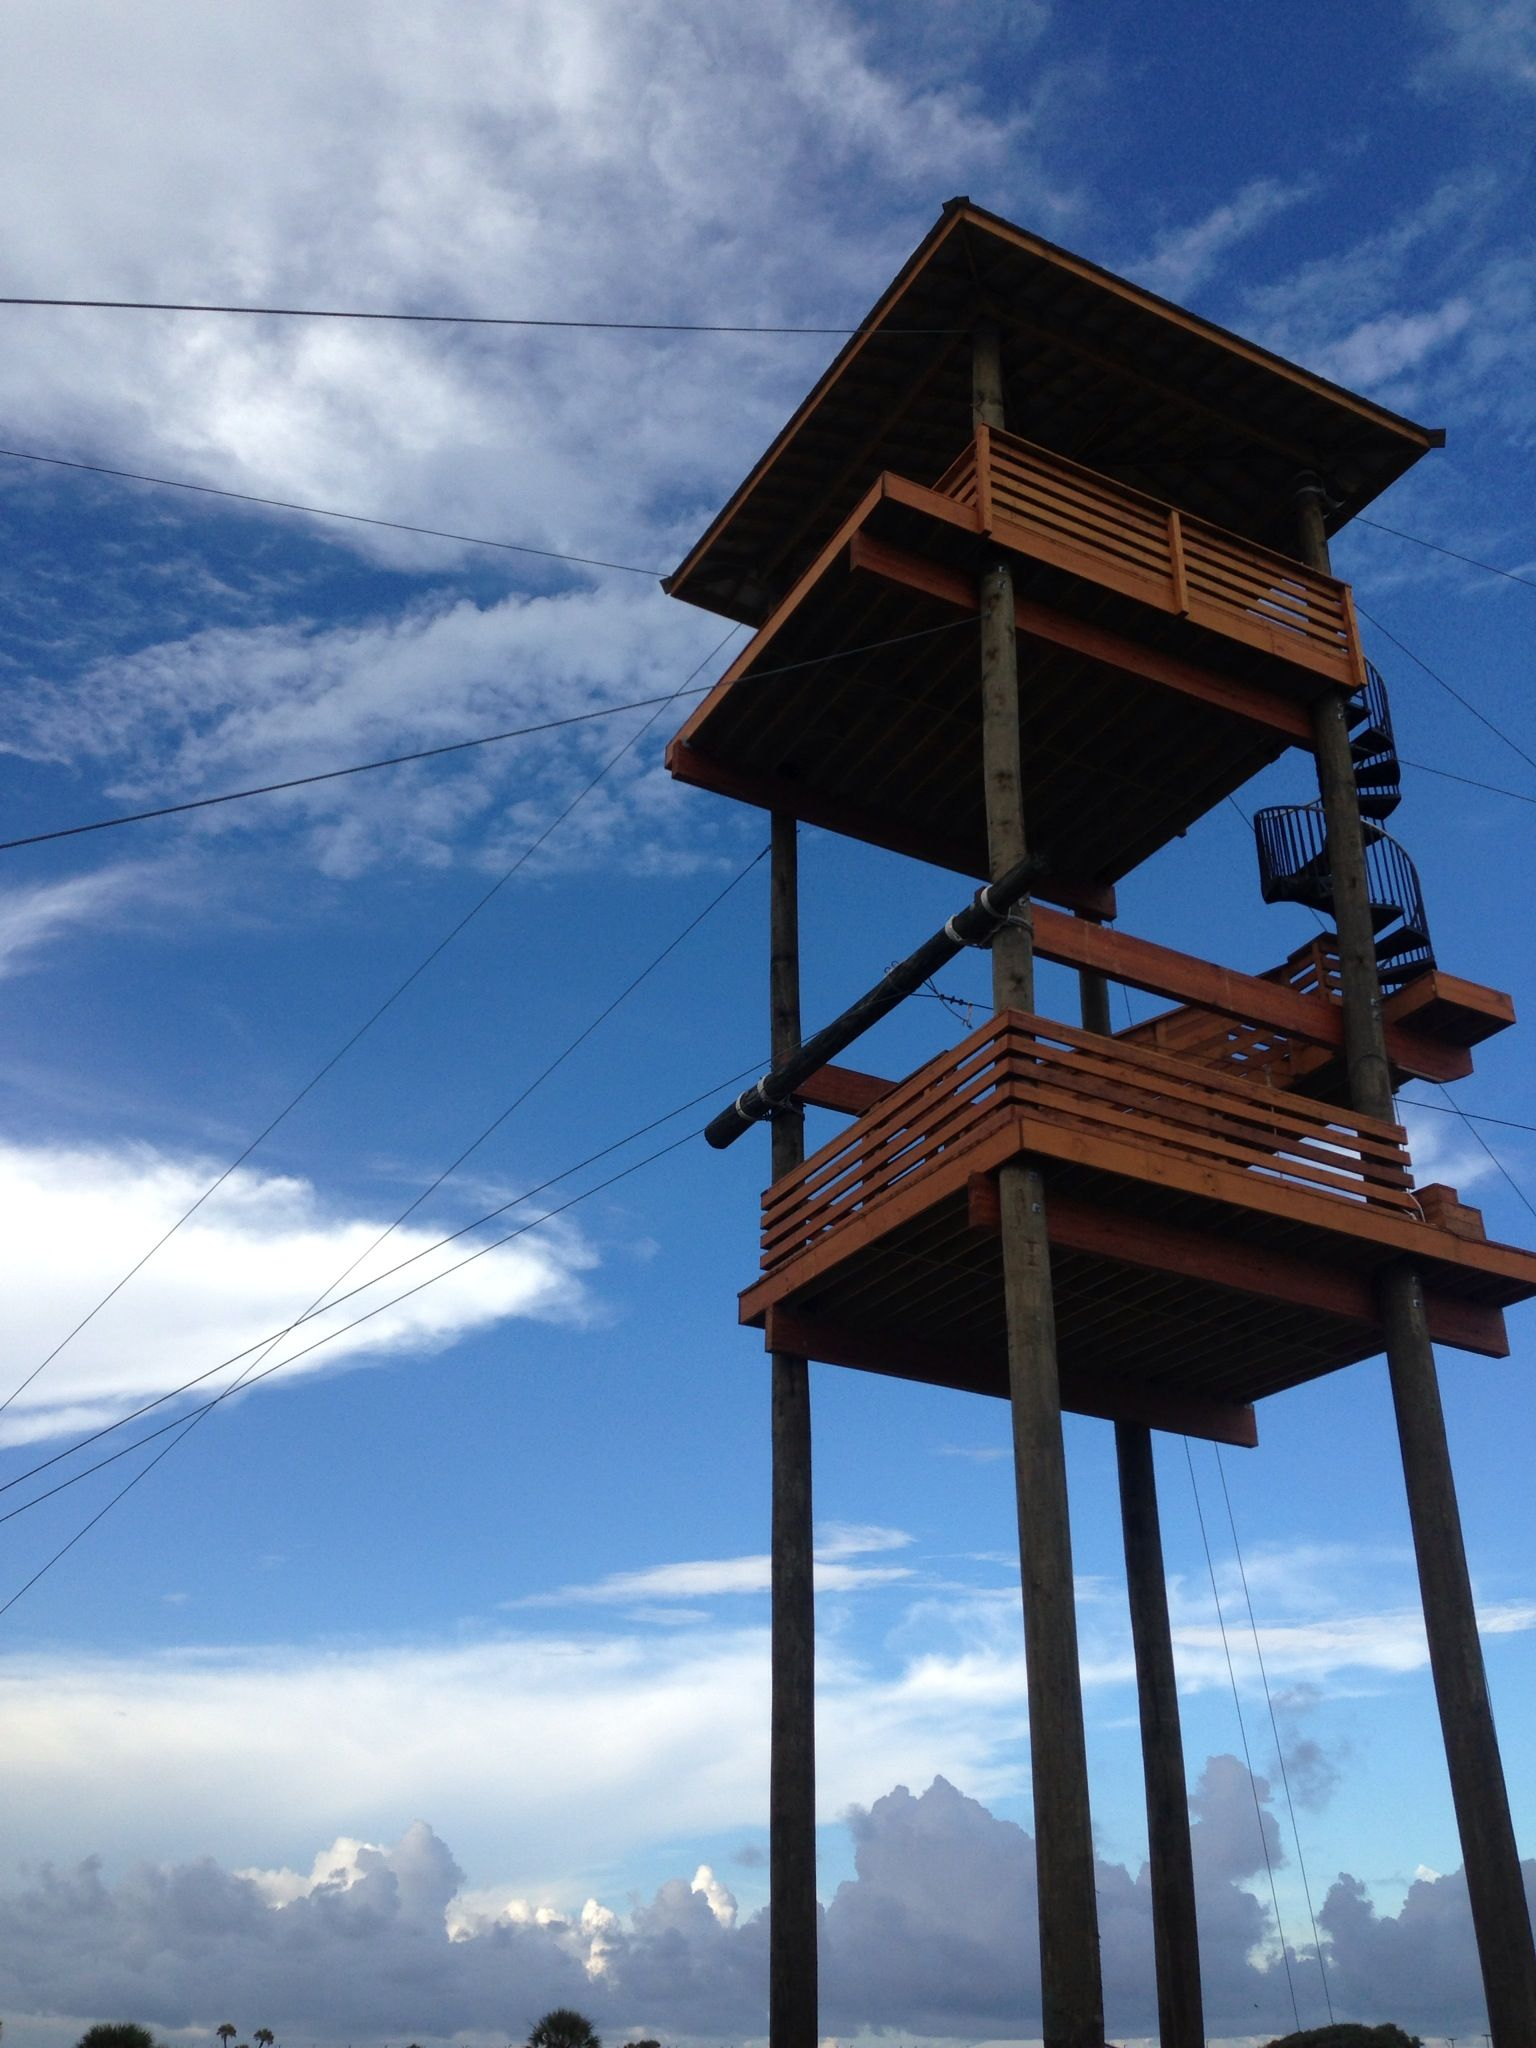 The Majestic Hummingbird Towers Stretches Up To Greet The Early